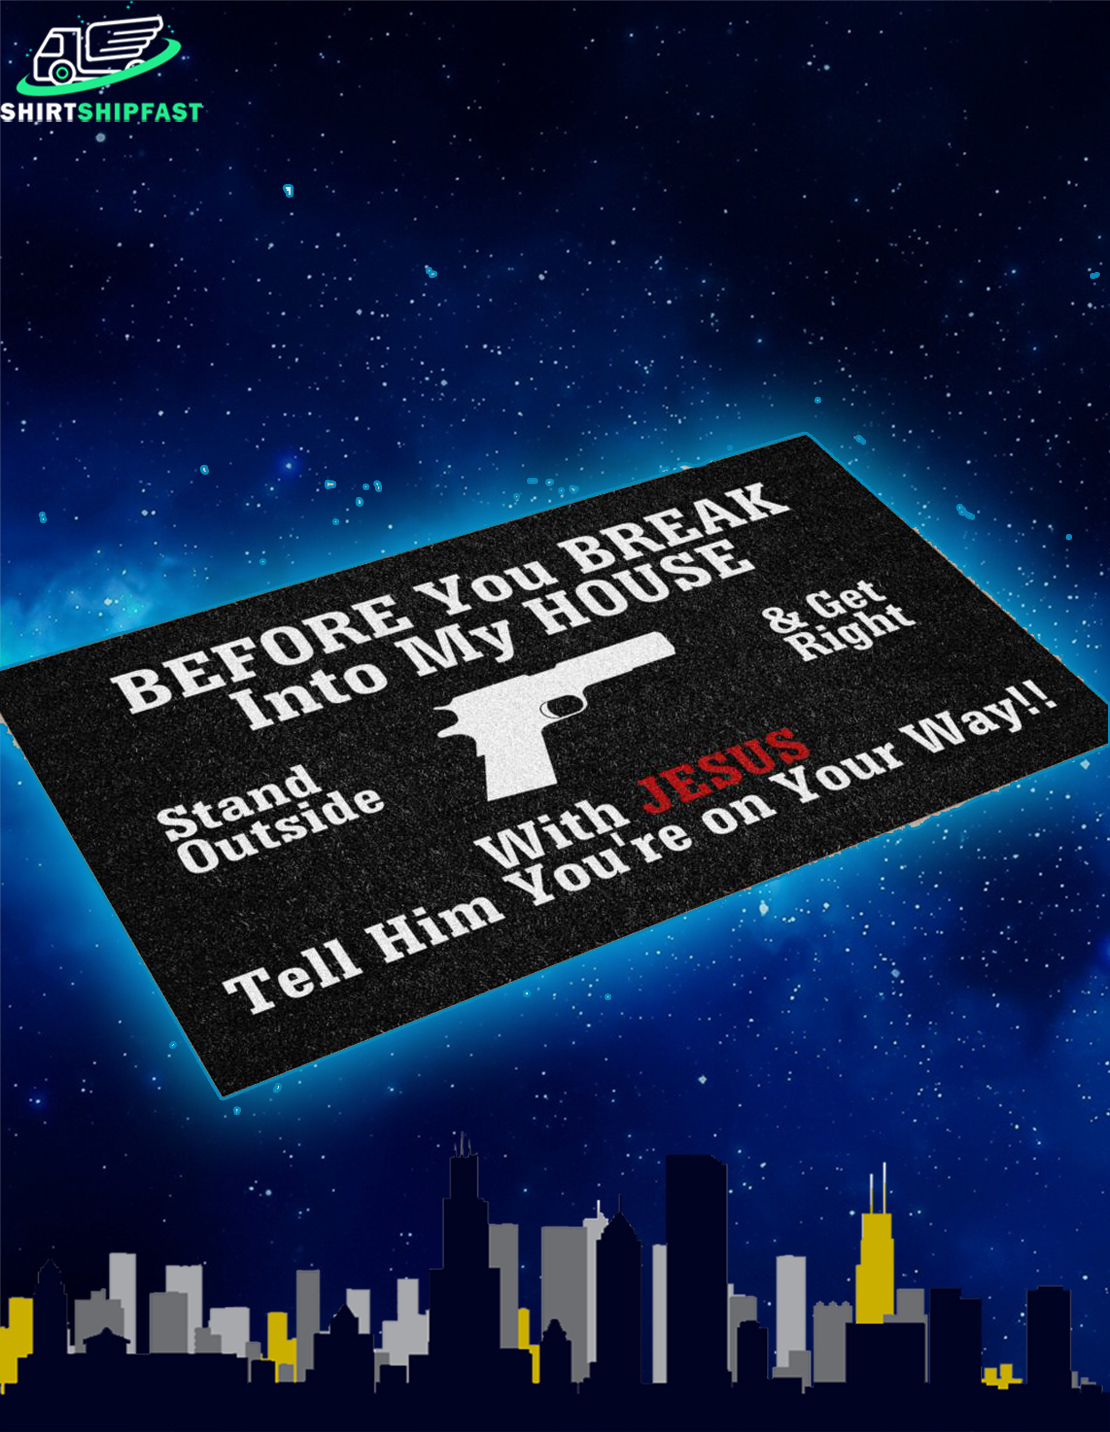 Gun Before you break into my house with Jesus tell him you're on your way doormat - Picture 2